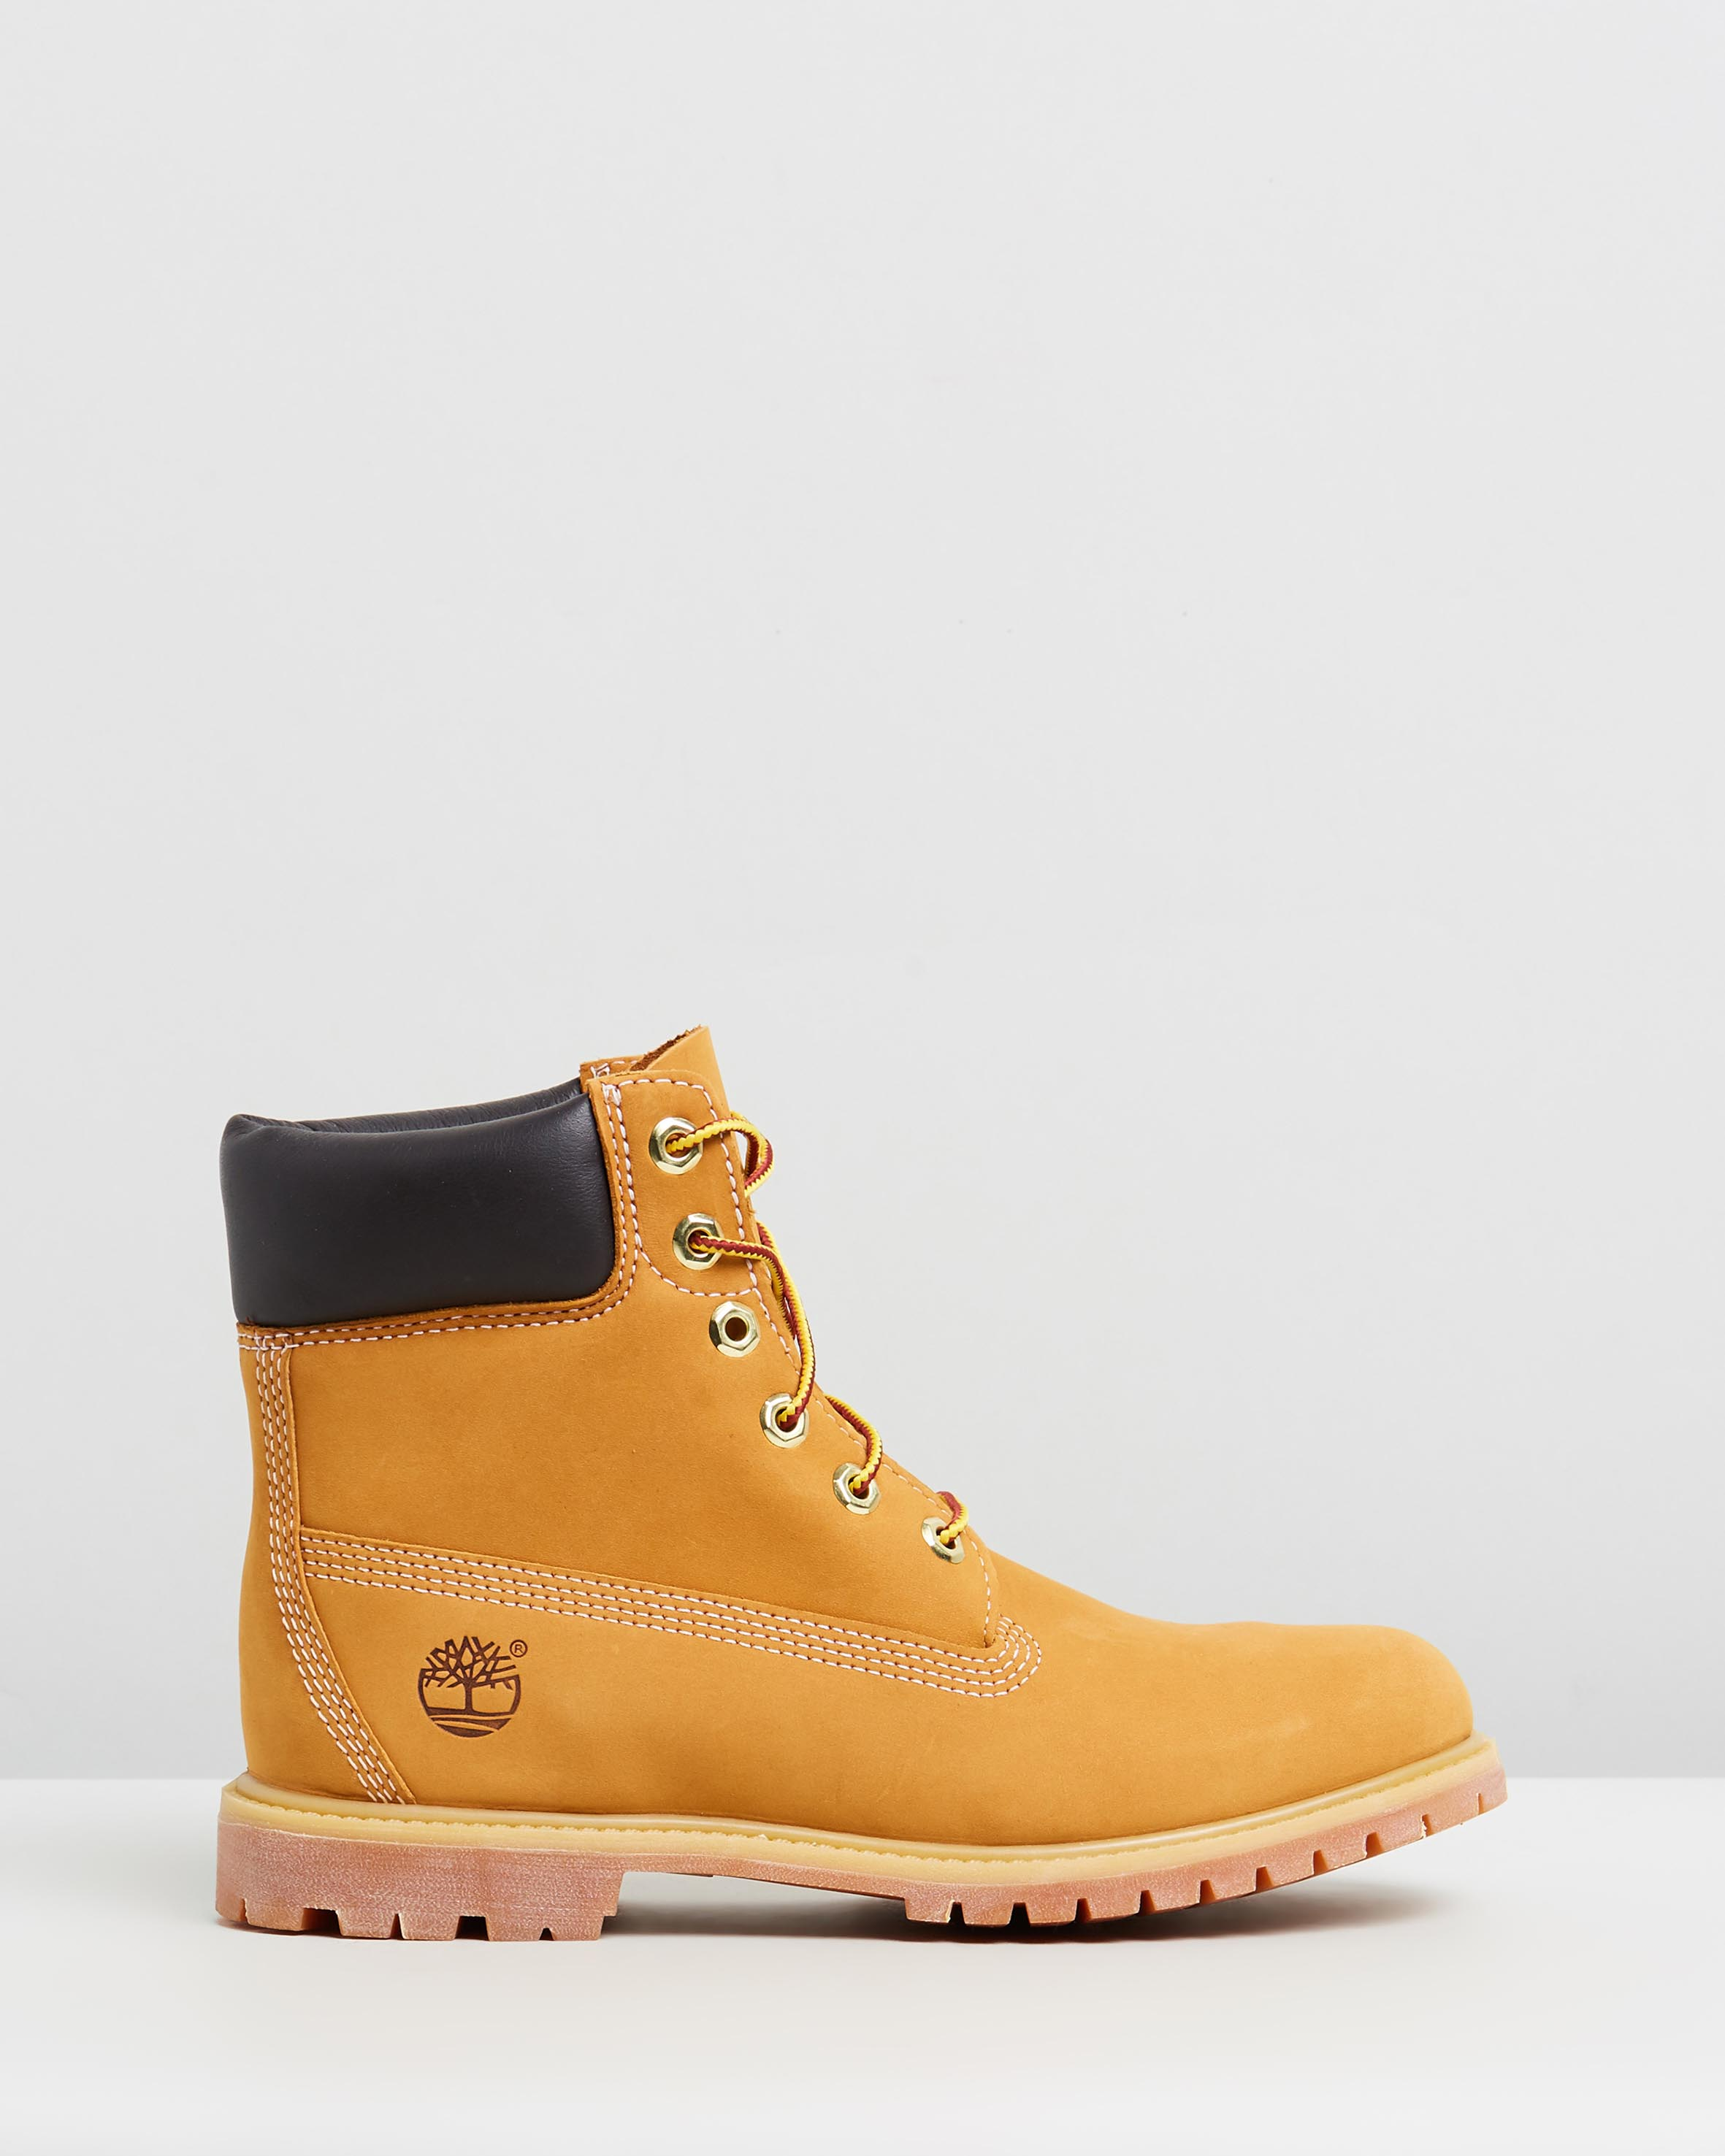 price of timberland boots